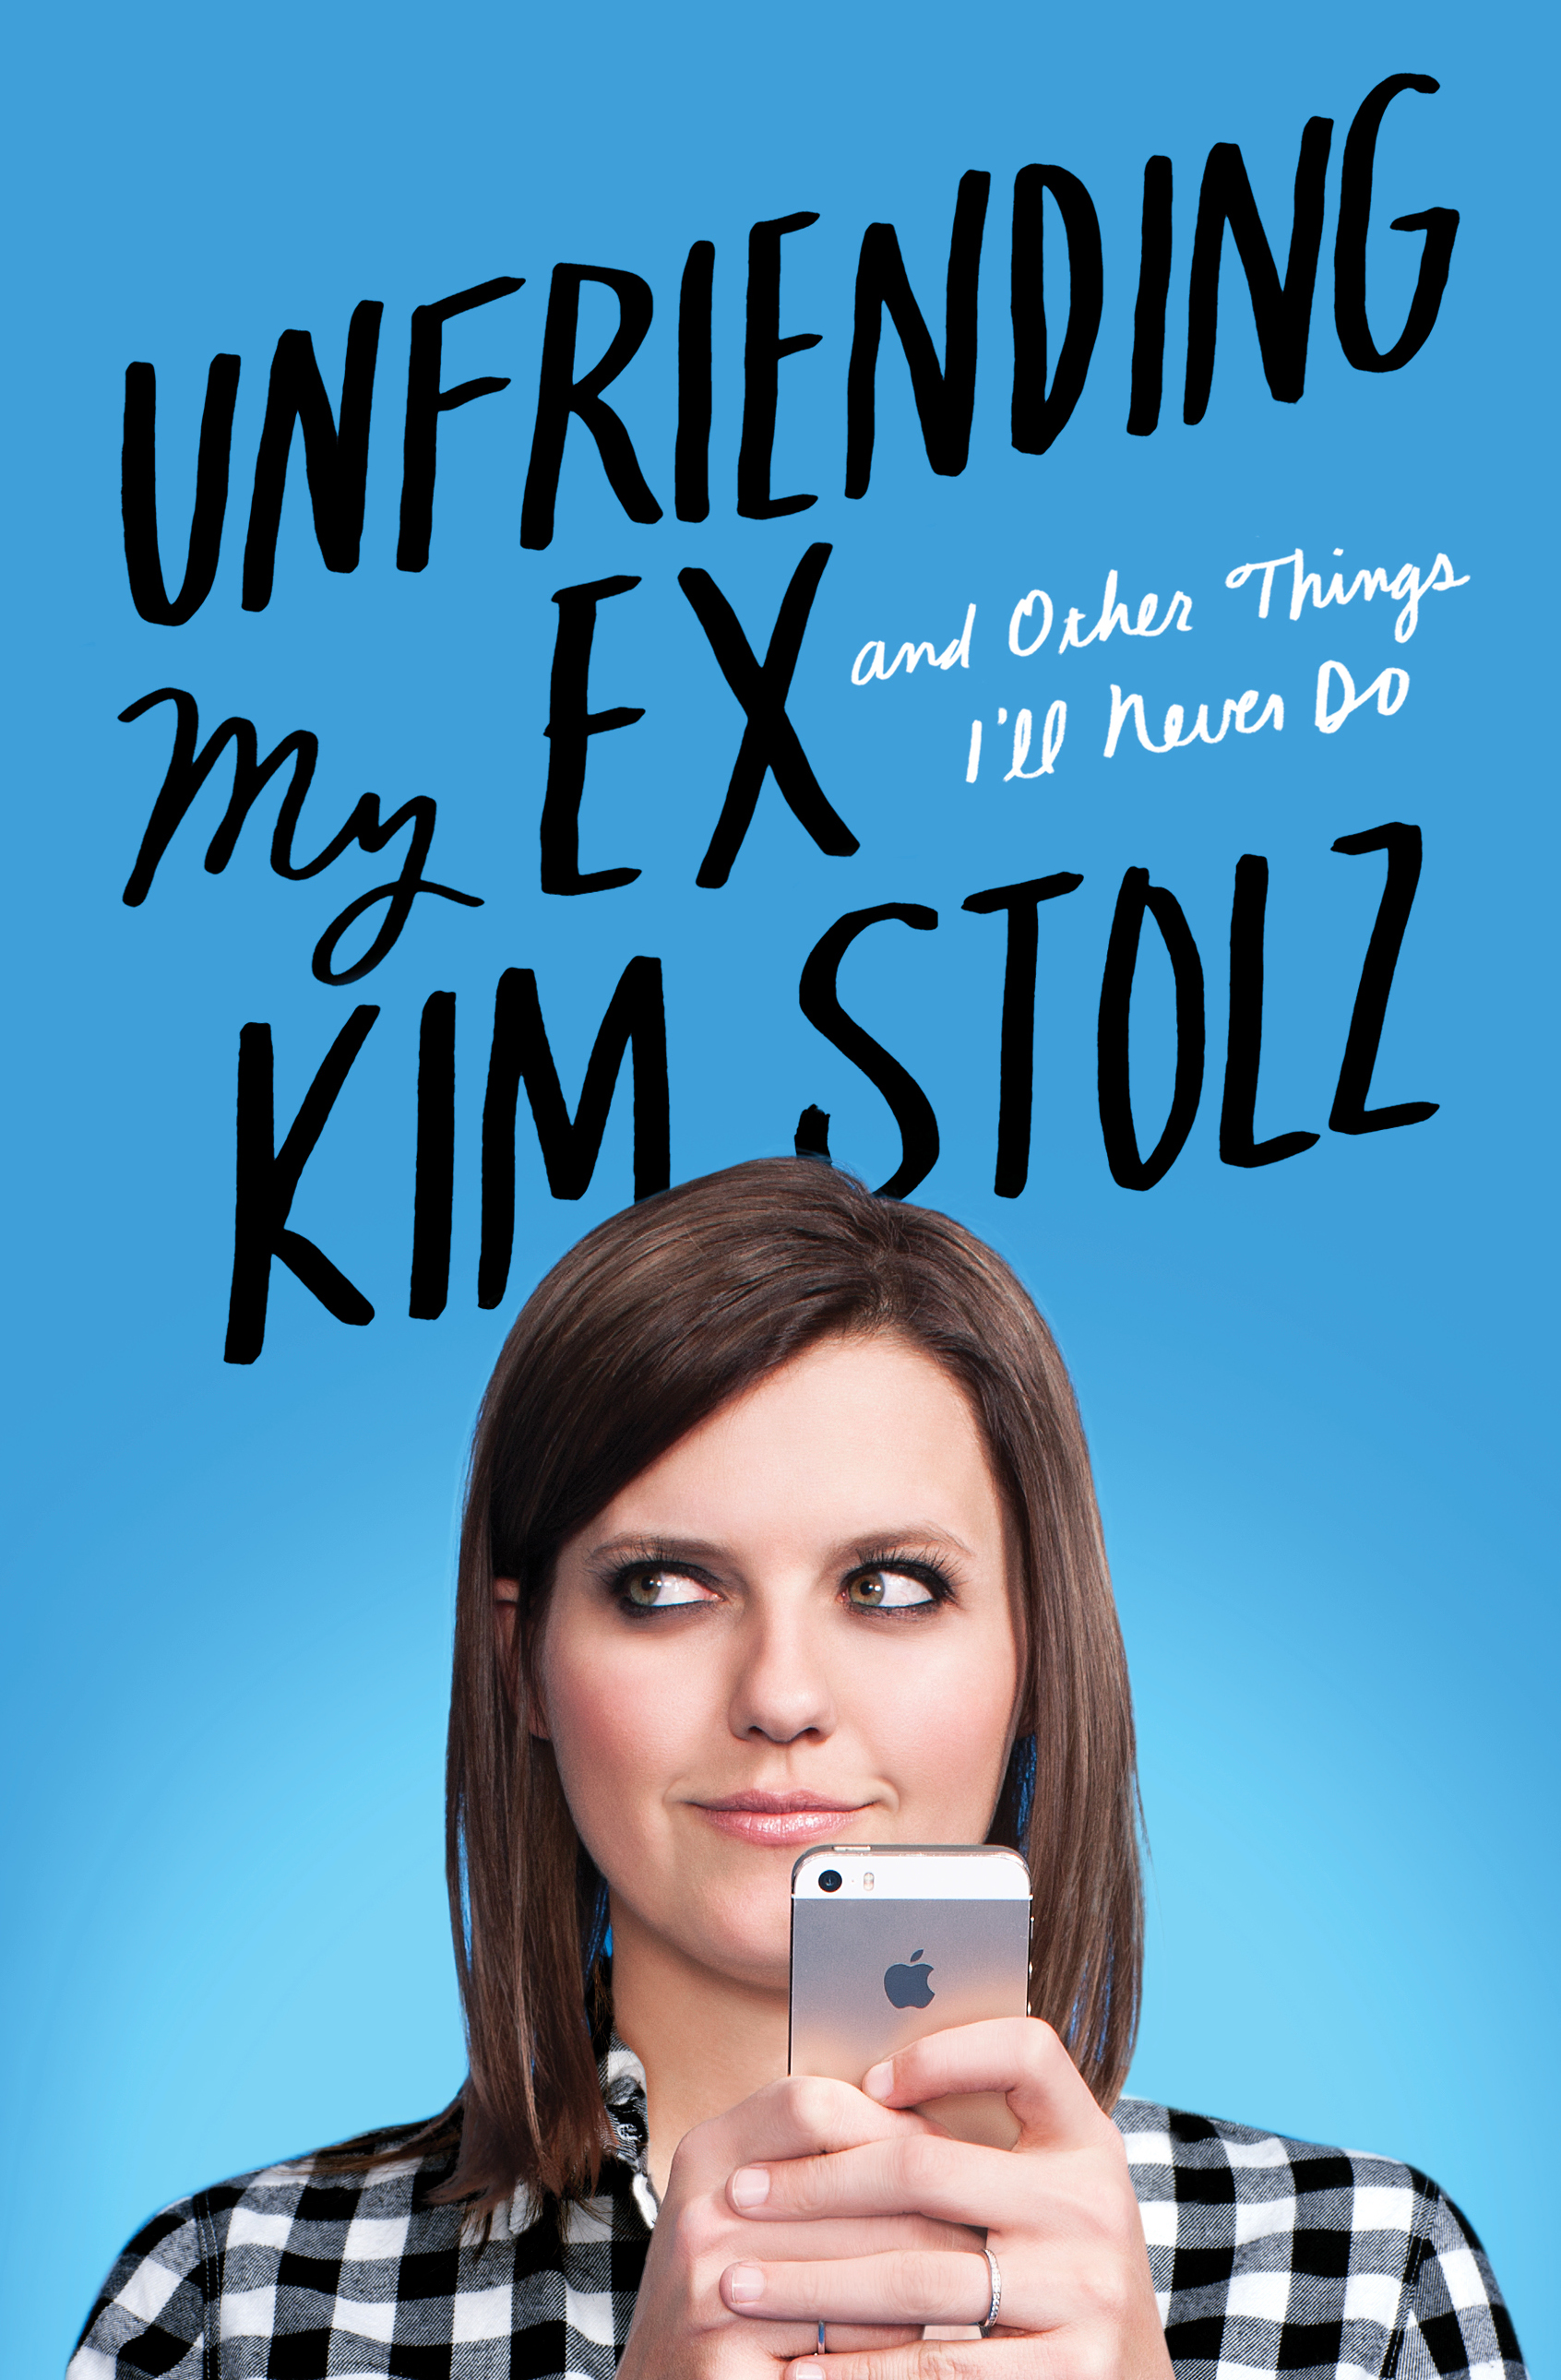 Unfriending My Ex (And Other Things I'll Never Do) by Kim Stolz